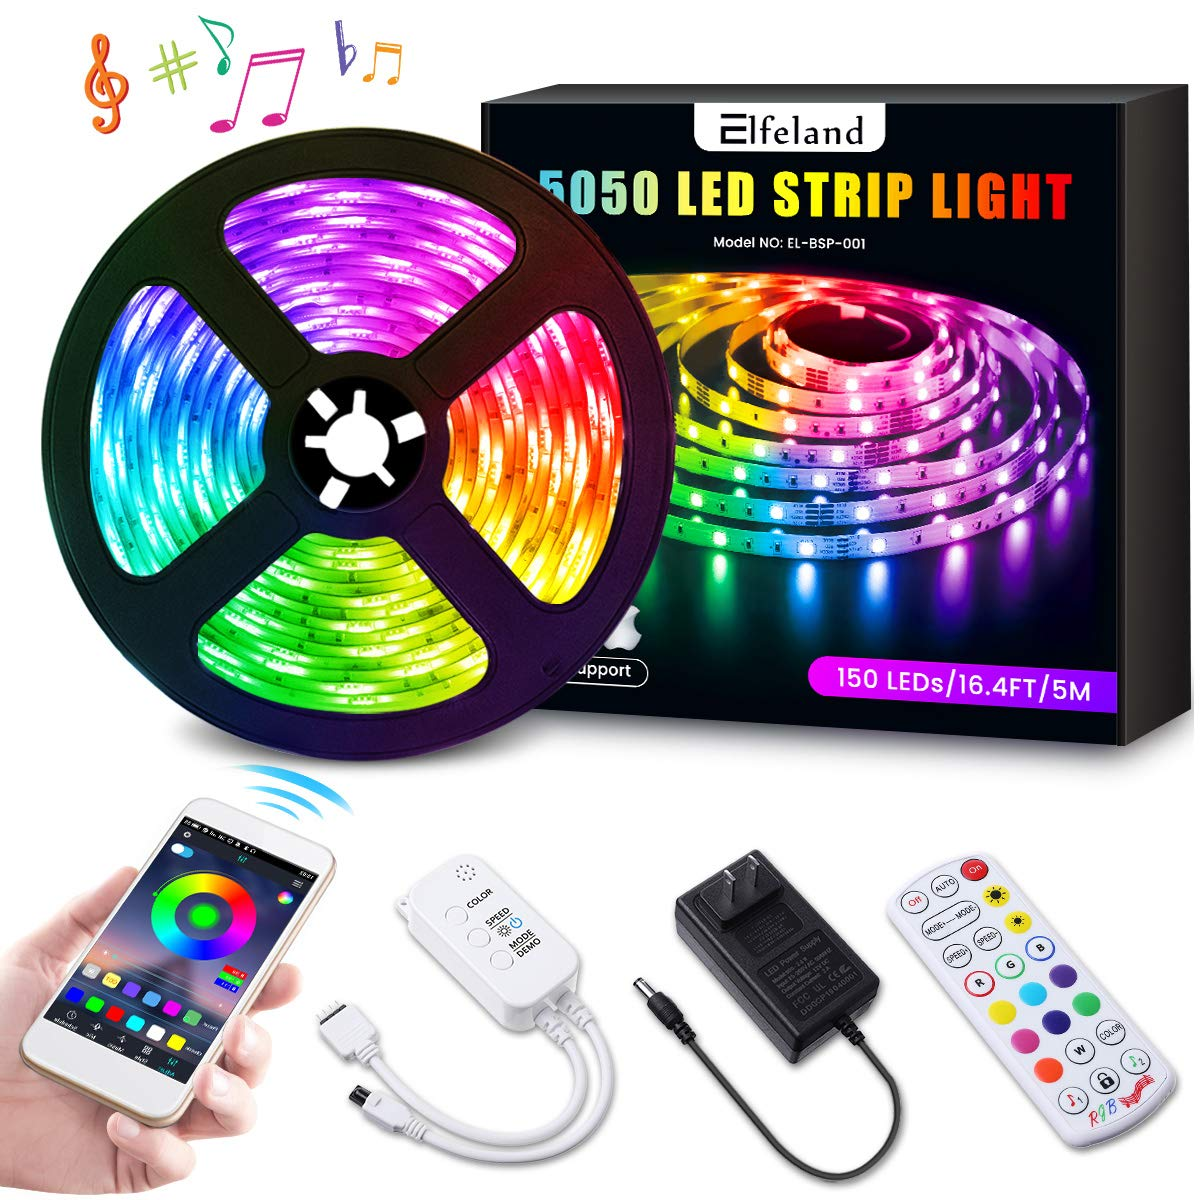 Elfeland LED Strip Lights 16.4ft LED Light Strip SMD5050 RGB Tape Lights Color Changing Rope Lights Work with App Sync with Music Flexible Strip Lights Kit for TV, Bedroom,Party, Home Decoration